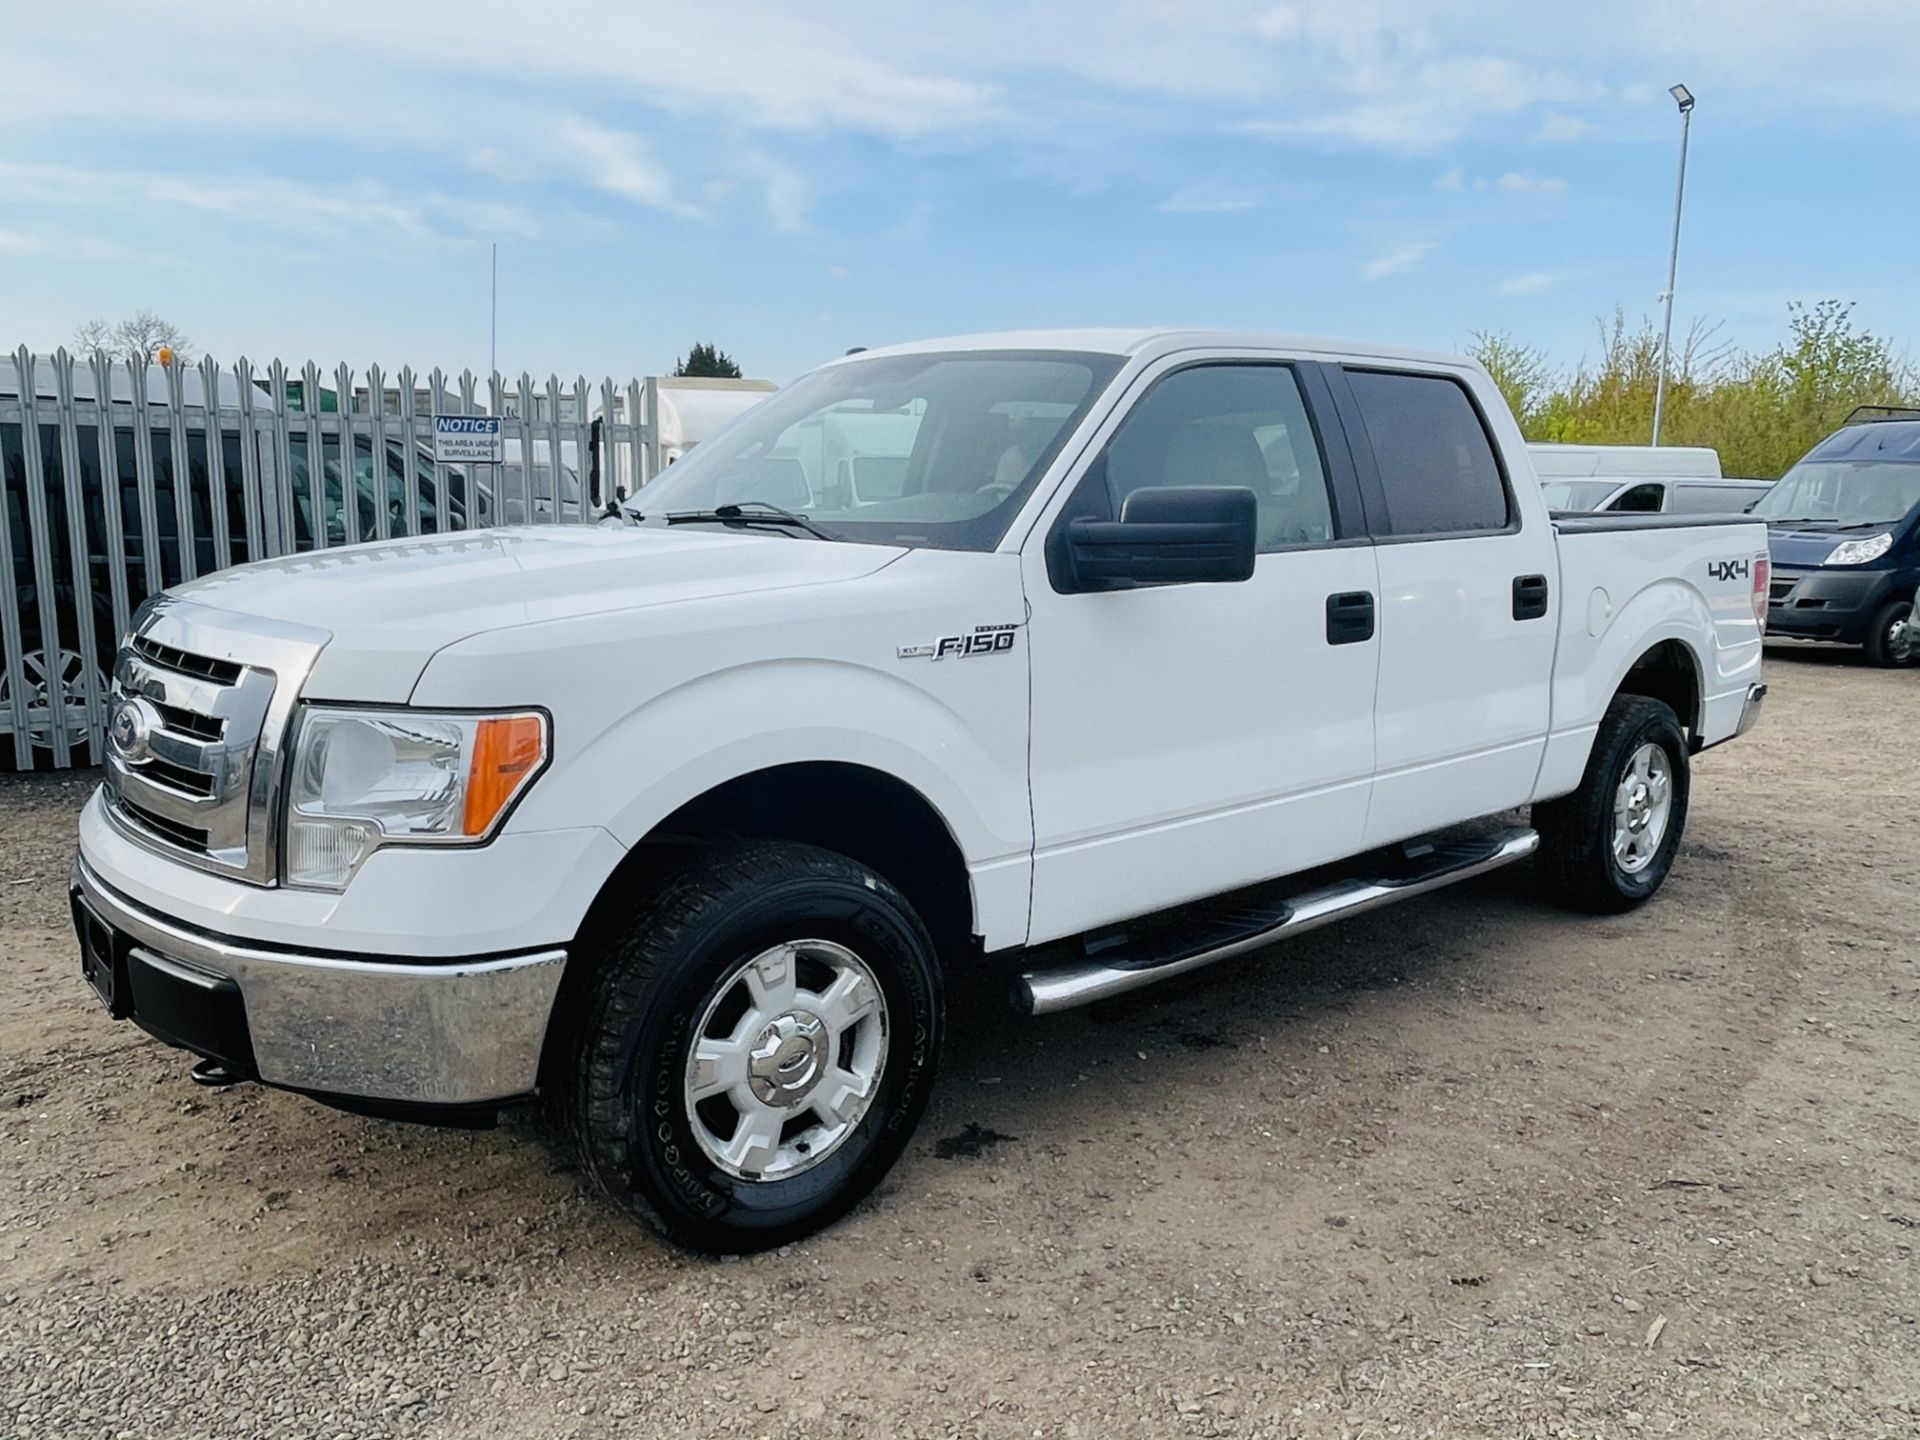 Ford F-150 XLT 4.6L V8 Super-crew 4WD 2010 ' 2010 Year' 6 Seats - Air con - NO RESERVE - Image 5 of 24